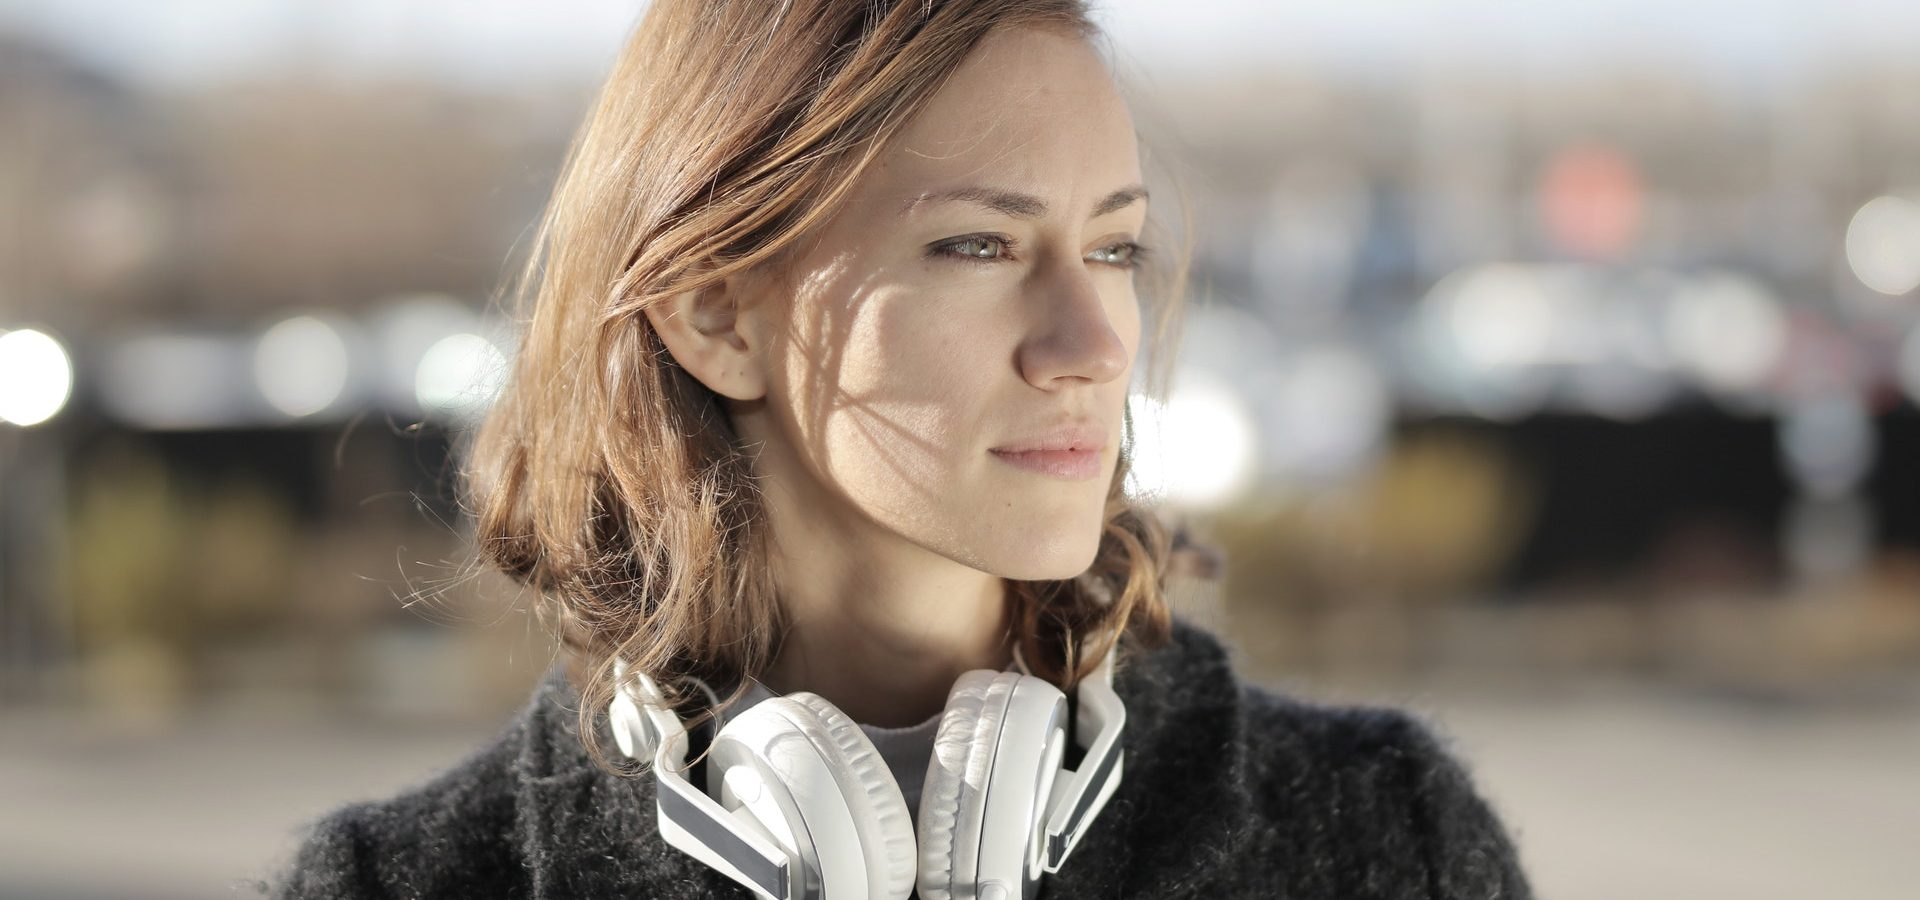 Woman with headphones around her neck outside